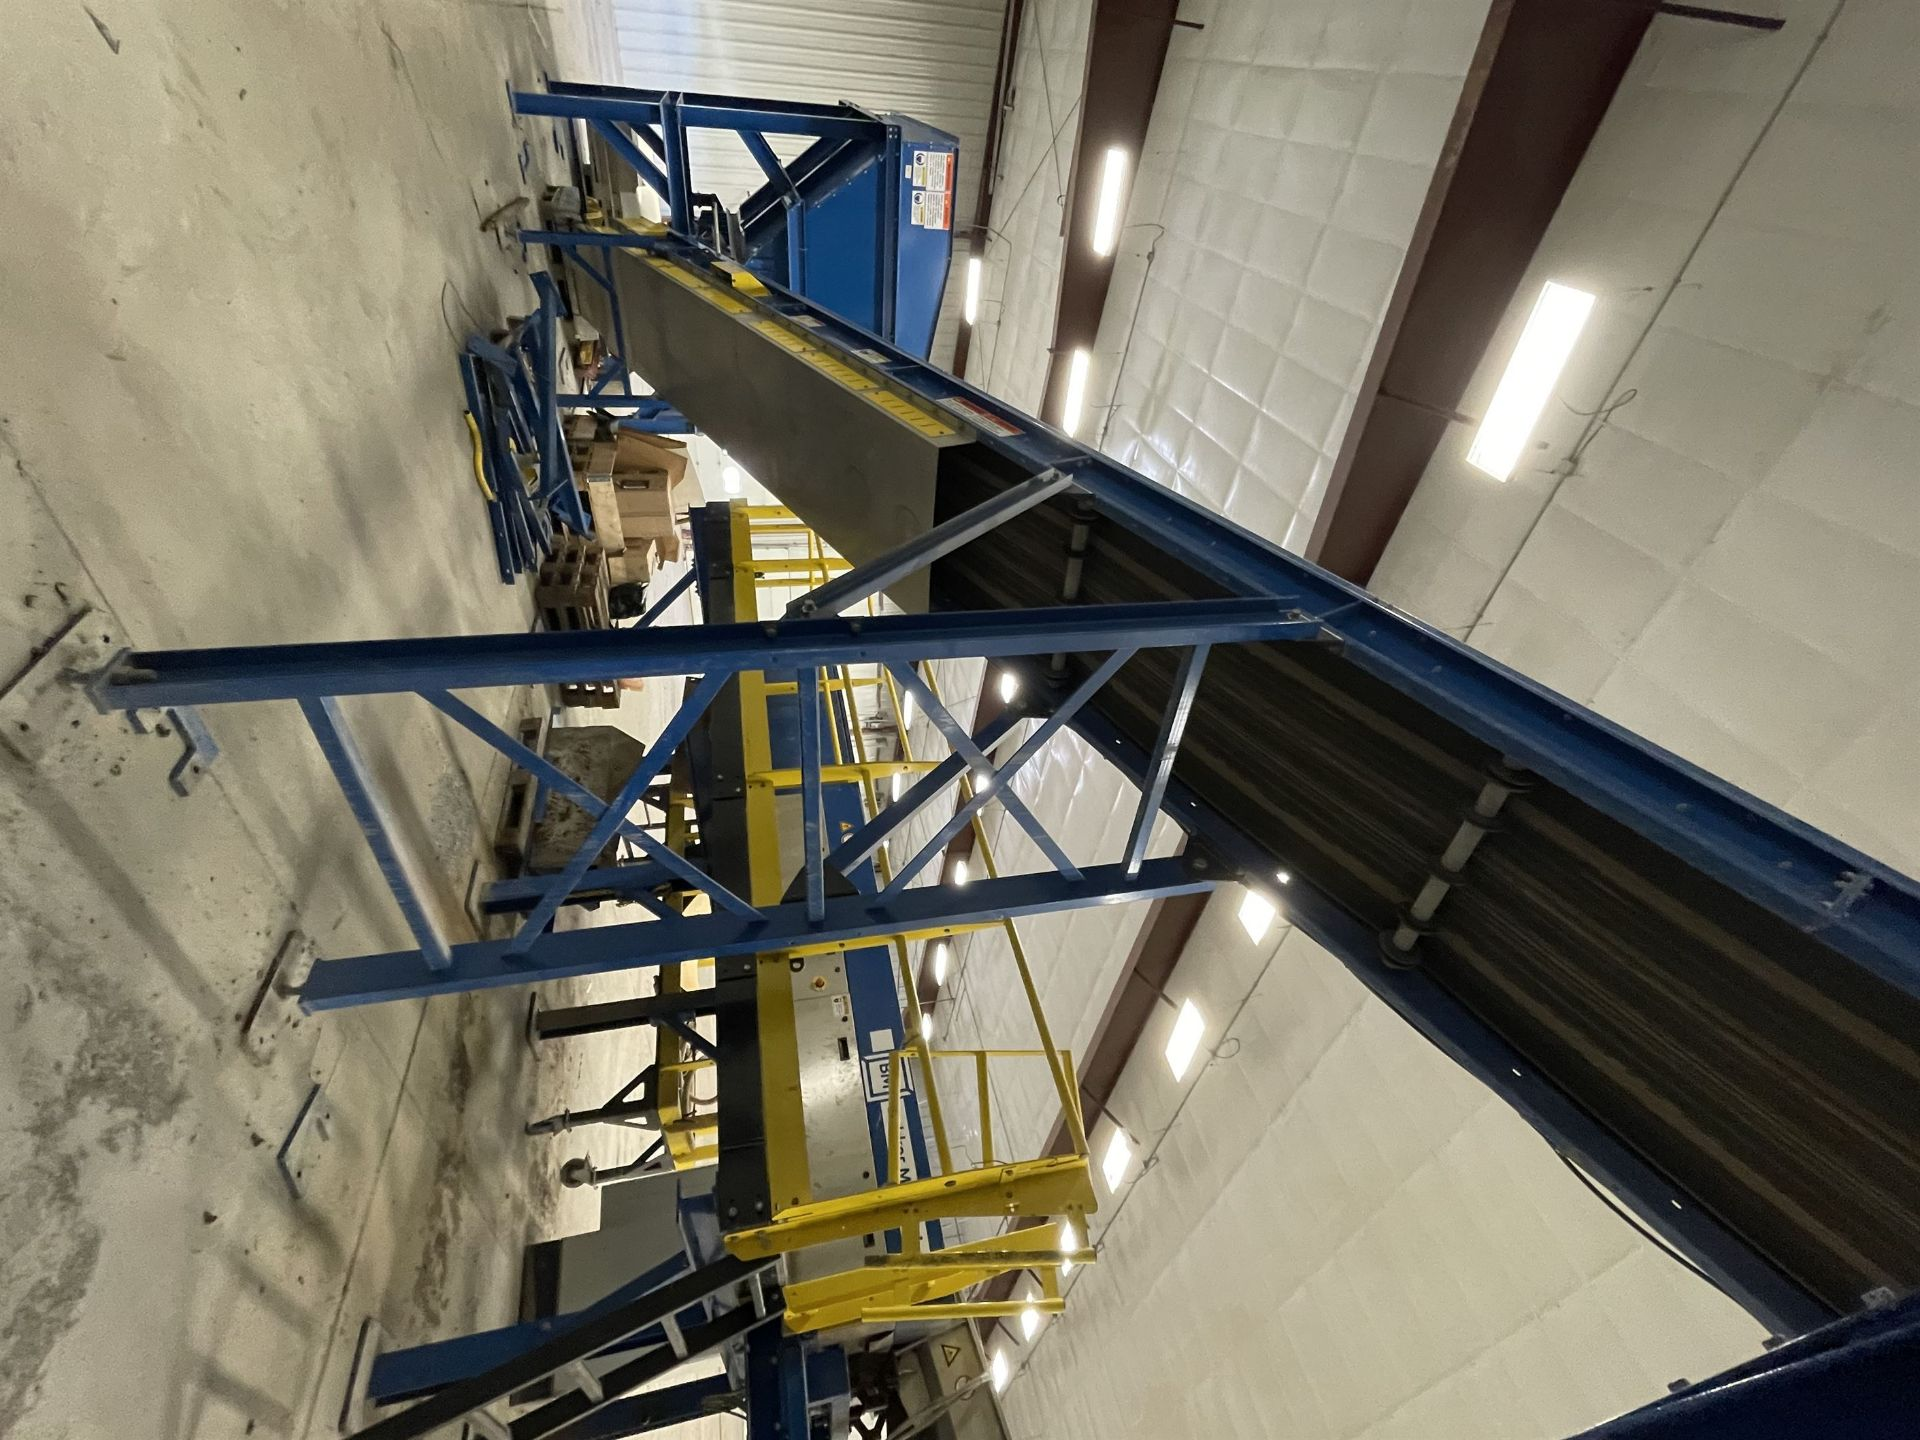 2015 LUBO SYSTEMS TBL 1000x15000 Inclined Belt Conveyor, s/n 800108-0040, 1000mm x 5000mm, SEW 3.7 - Image 4 of 5